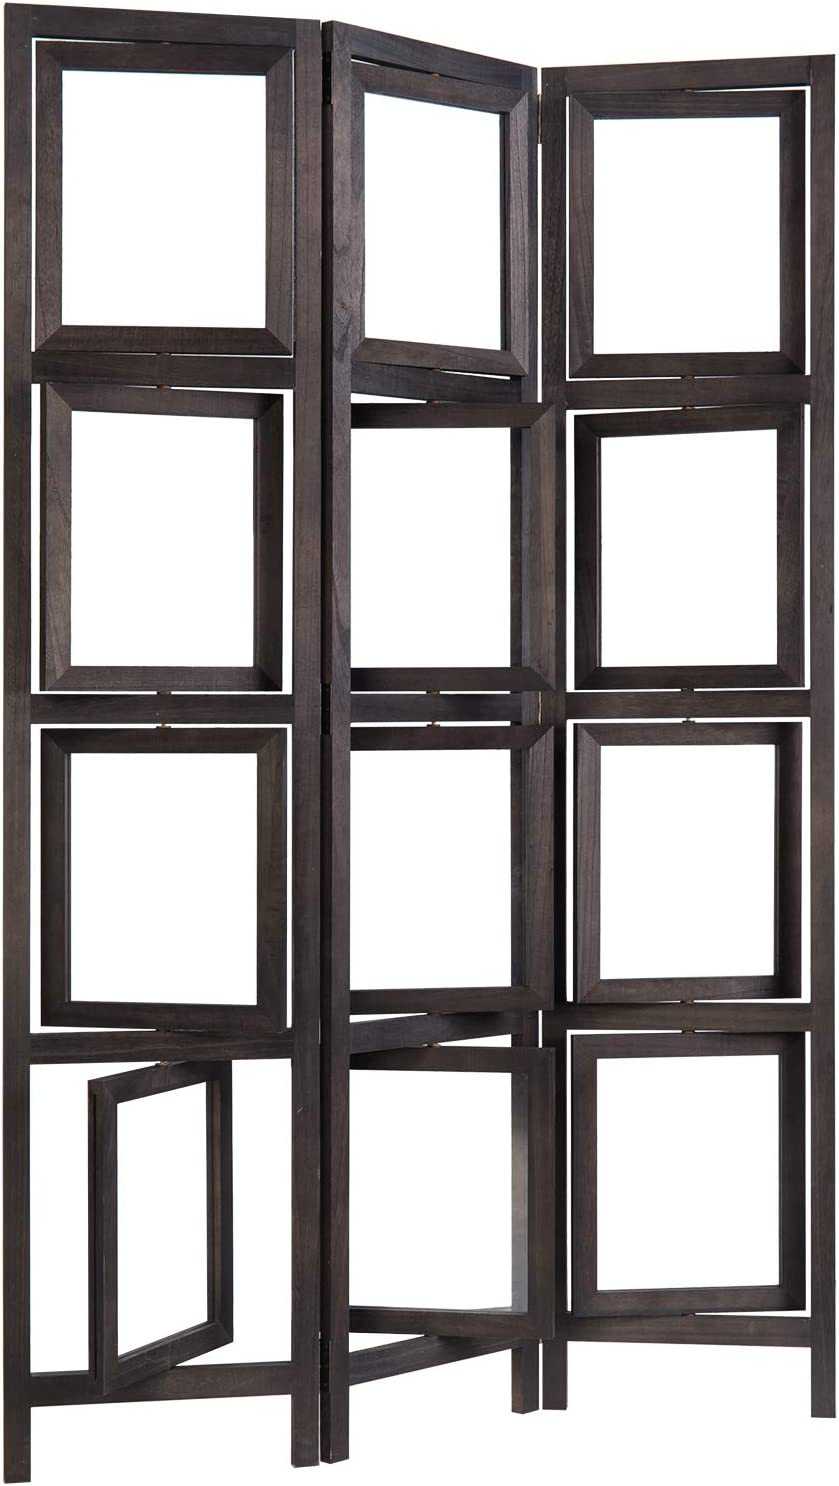 MyGift 3-Panel Vintage Dark Brown Folding Double-Sided Rotating Photo Frame Room Divider Screen